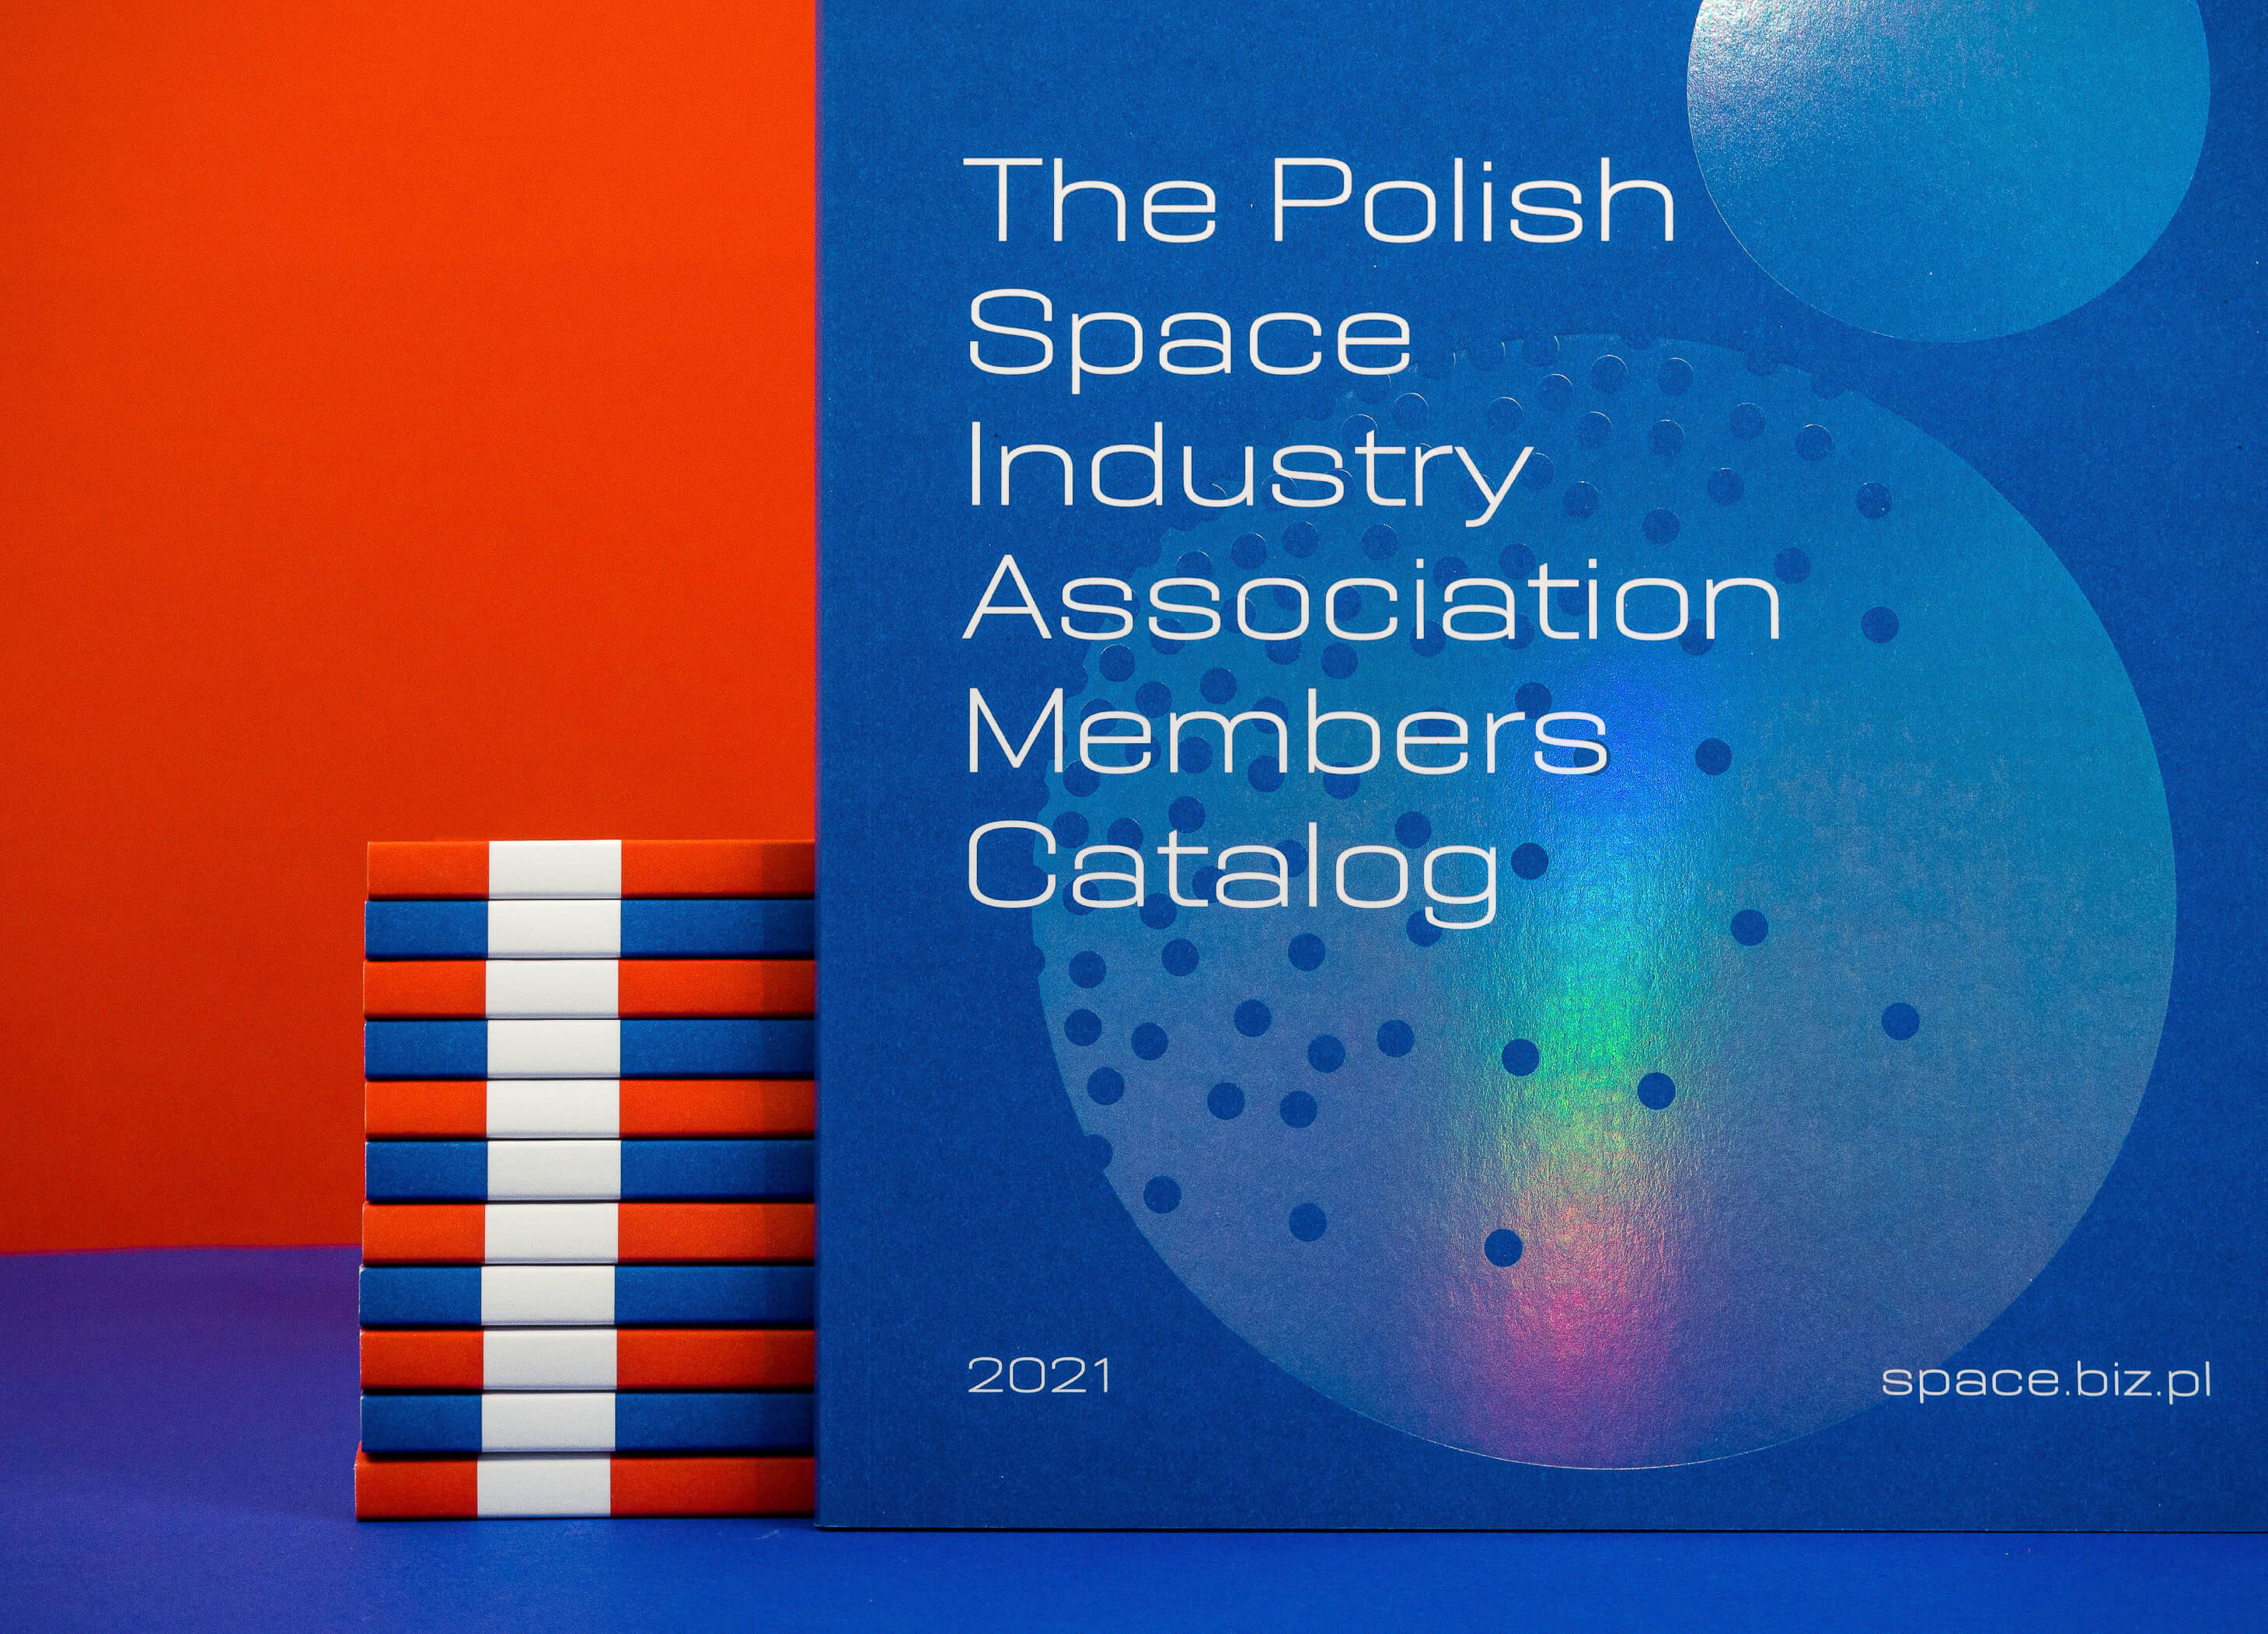 The Polish Space Industry Association Members Catalog